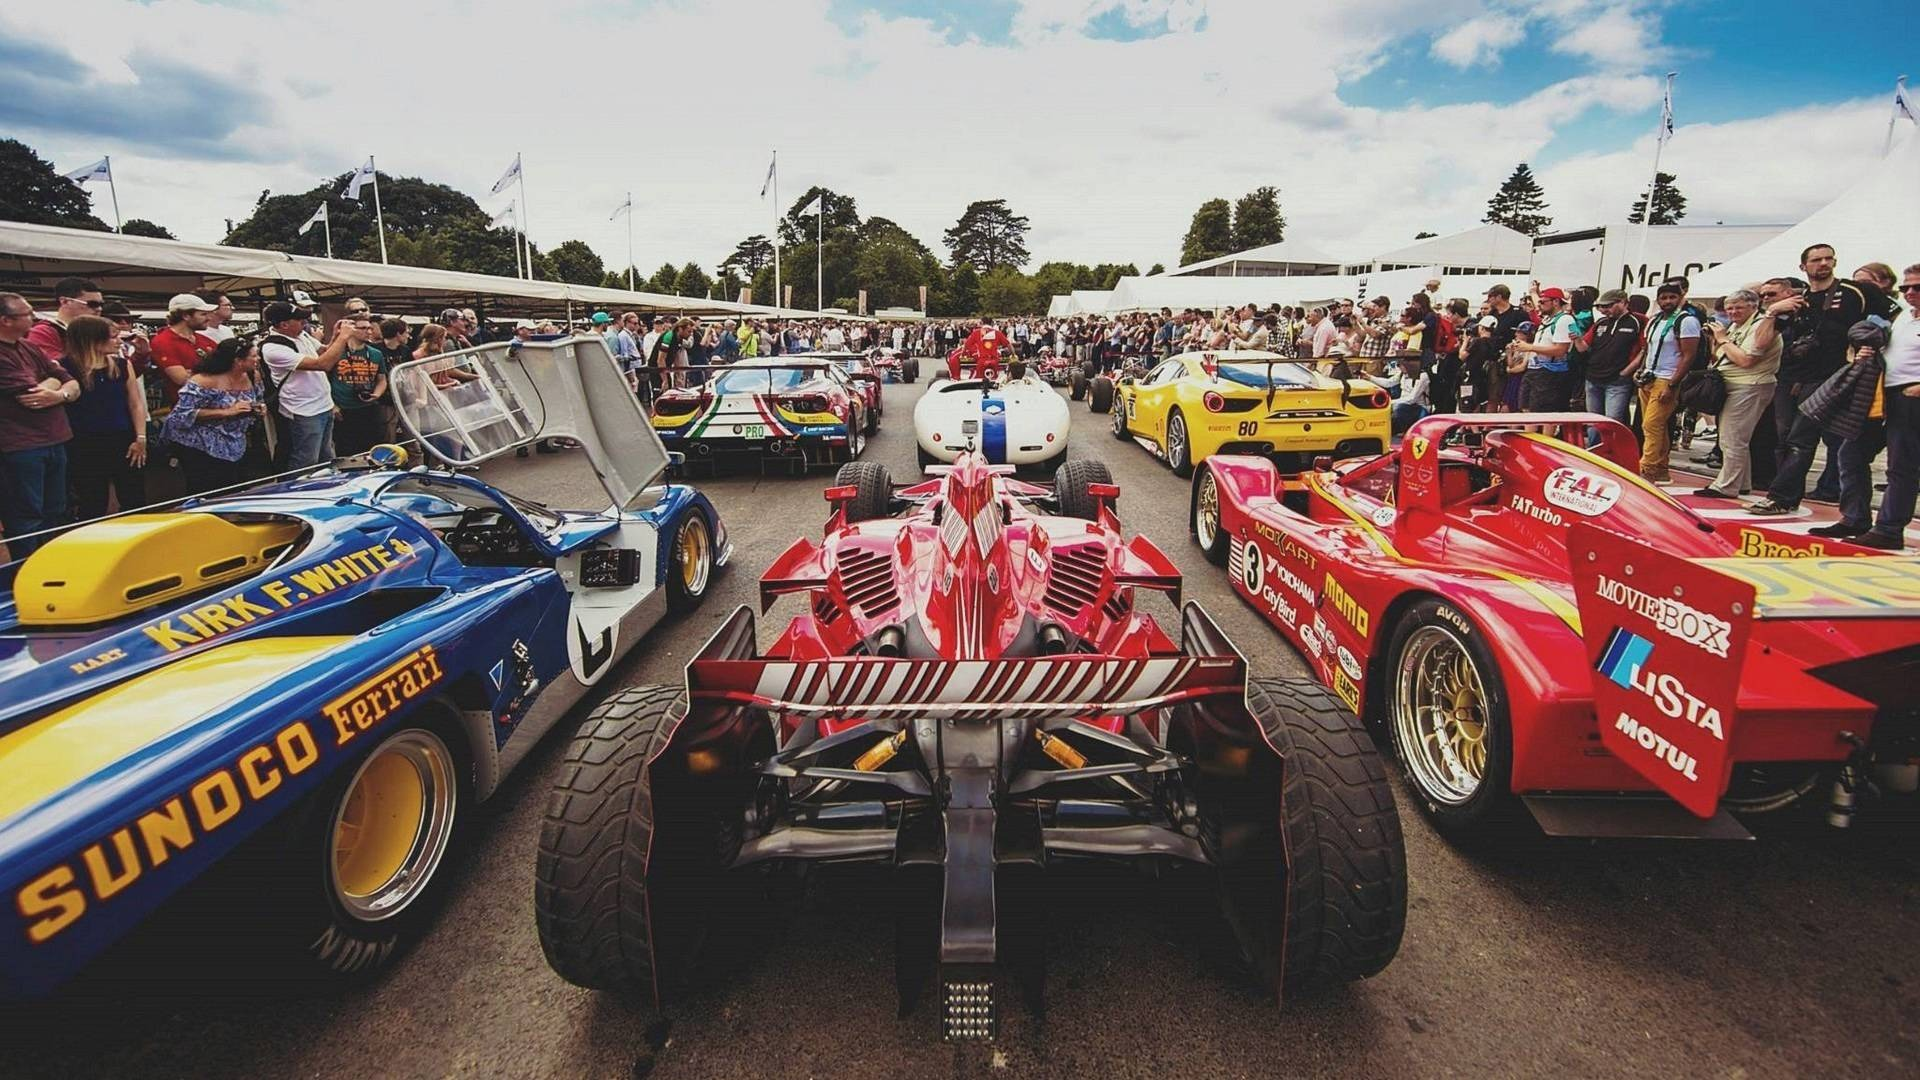 cars lining up at goodwood festival of speed